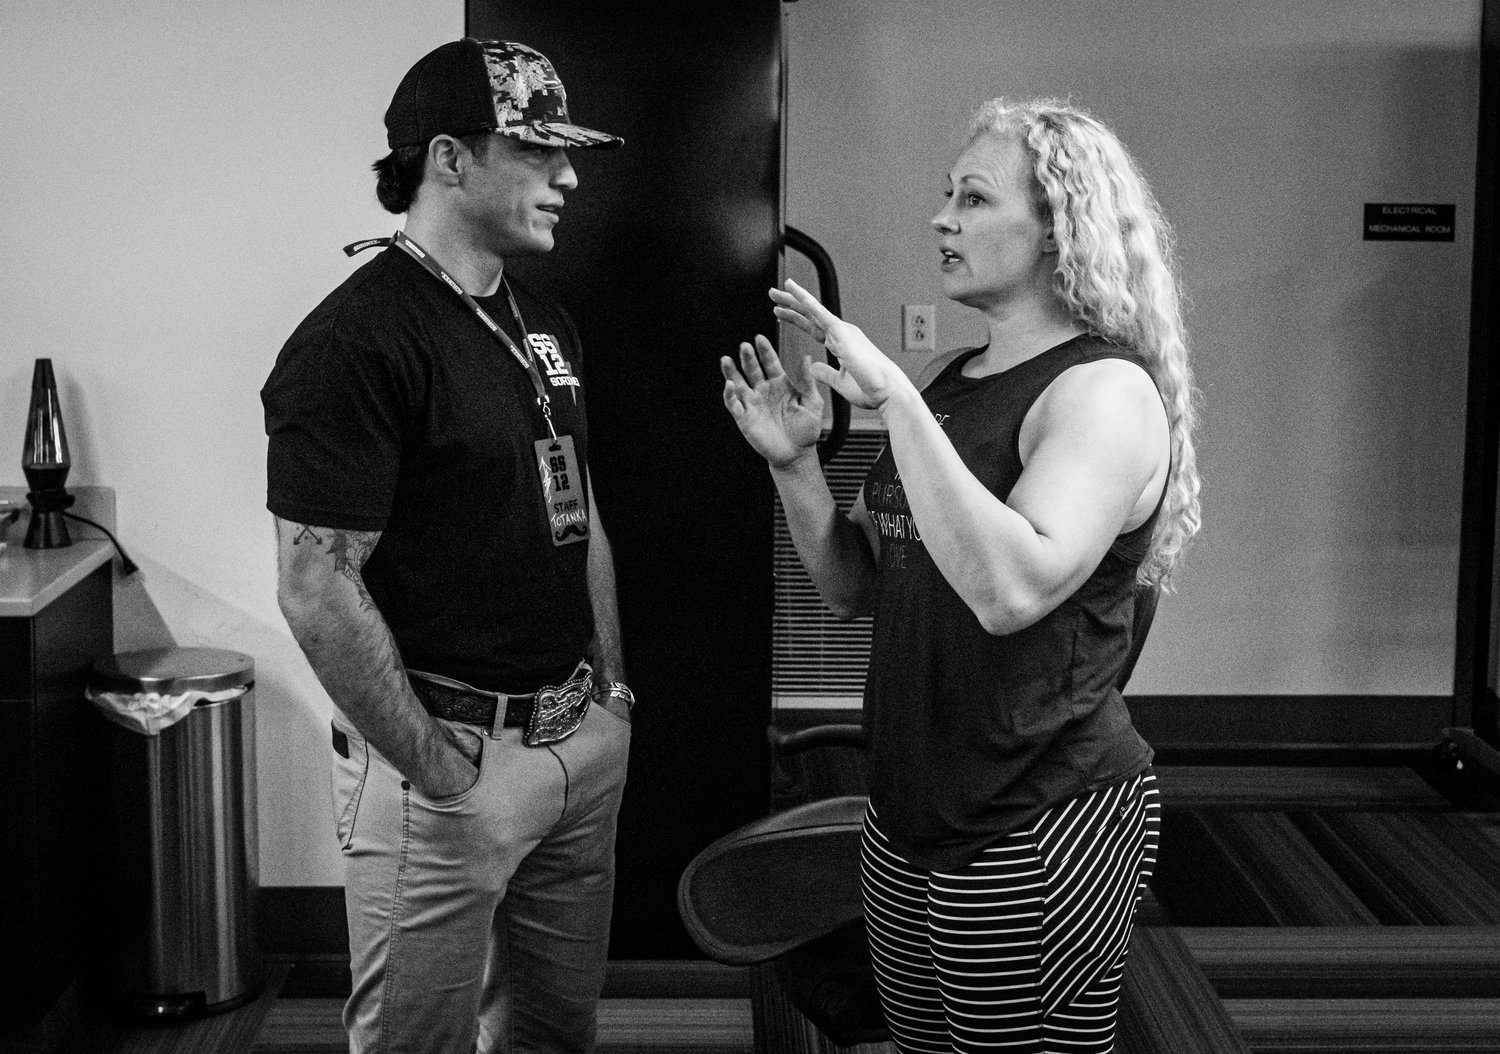 Brady speaks to his friend, Ingrid Marcum (IG: @theironvalkyrie) who is the owner of BGB Fitness Studio and a motivational speaker who's worked with top athletes all over the country.